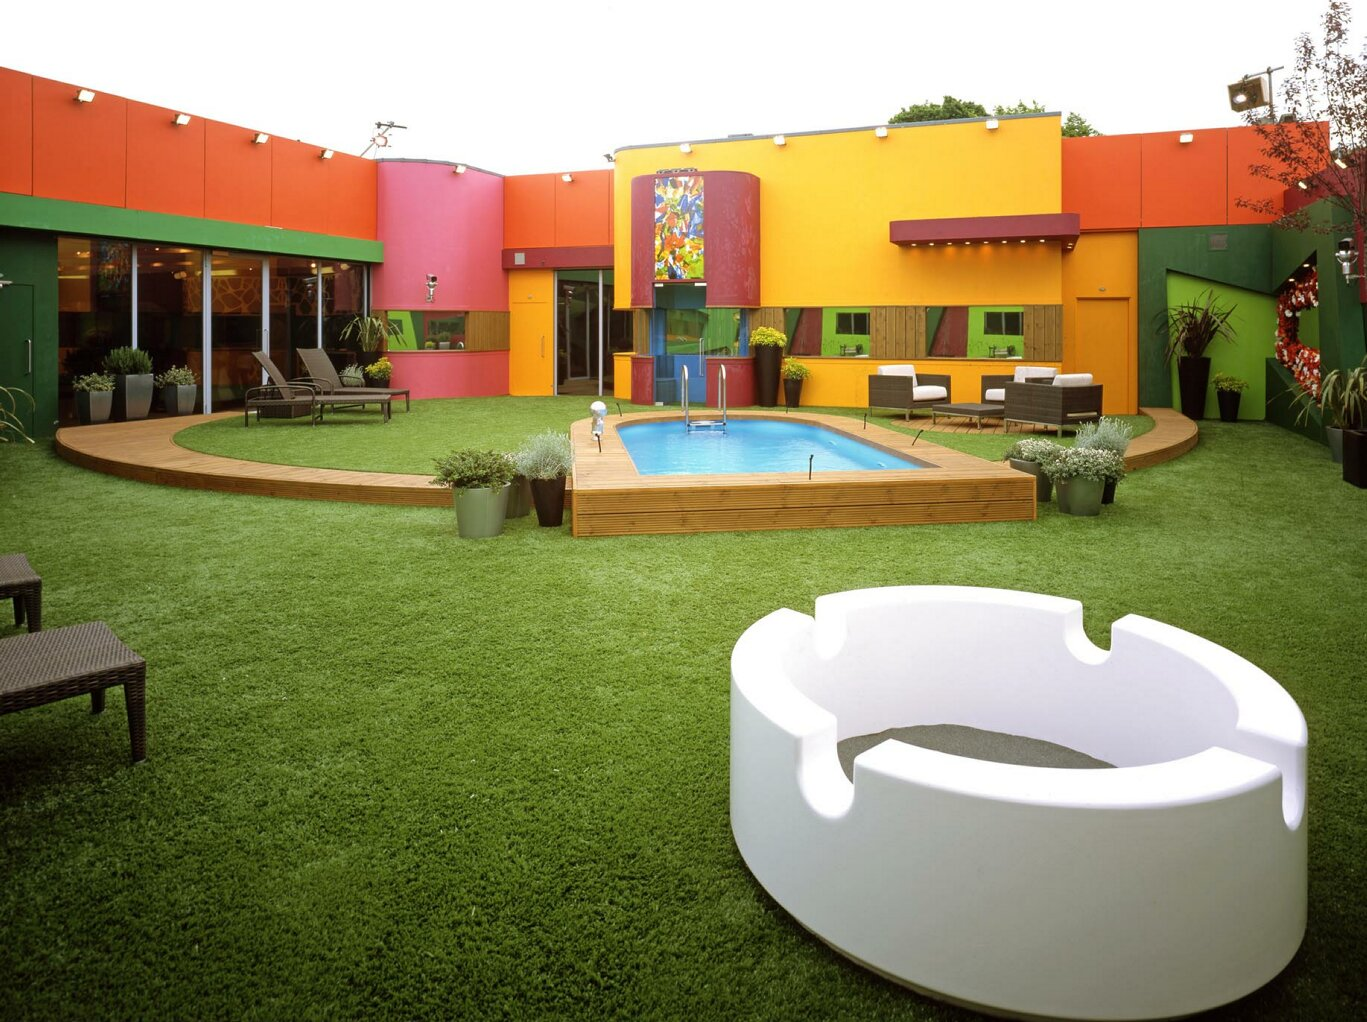 National Trust Opens The Big Brother House In A